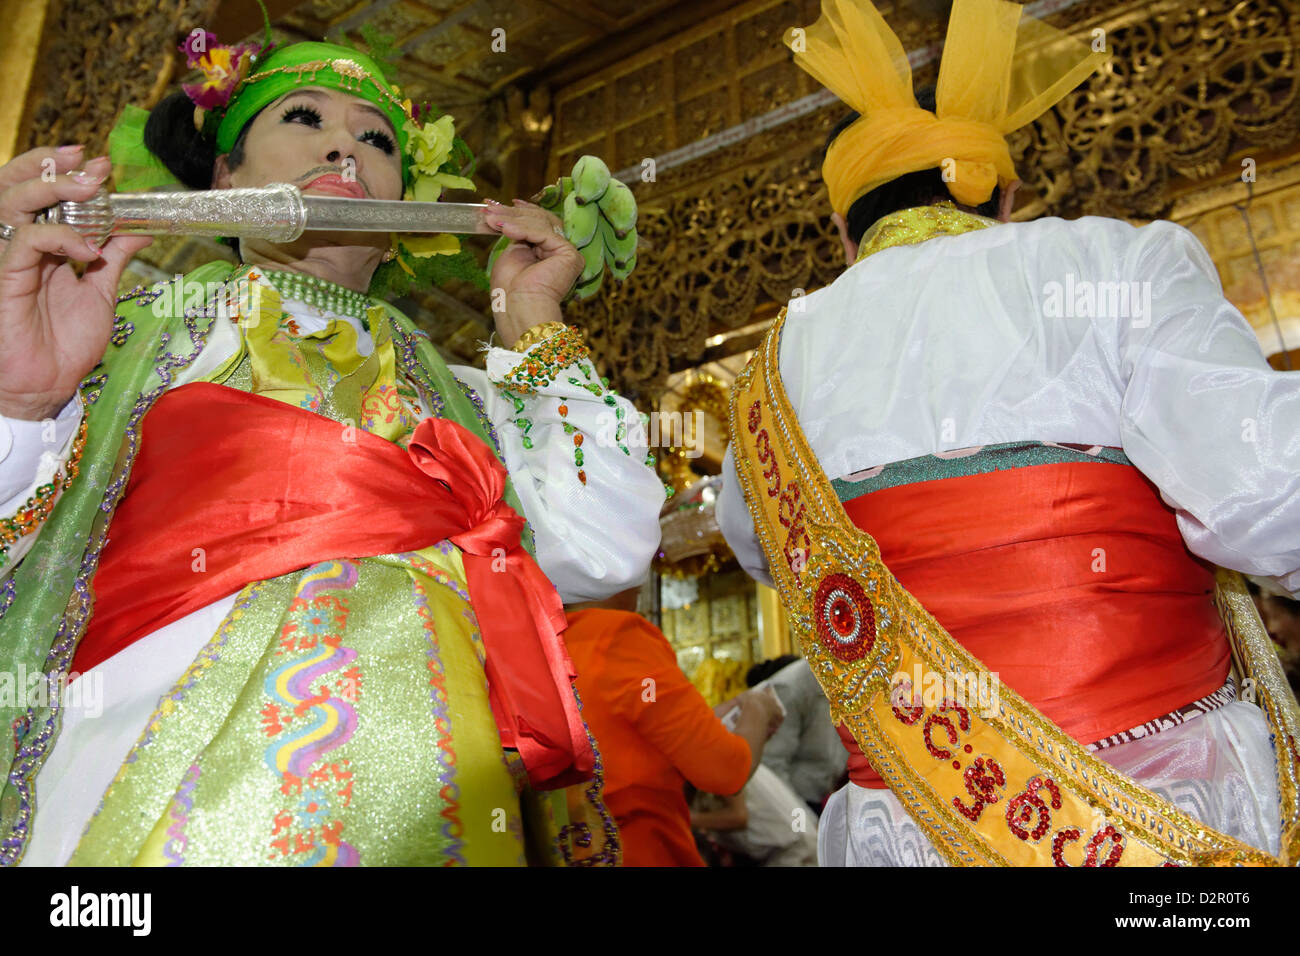 The biggest Nat ritual (Festival of Spirits) held in Taungbyon, Mandalay Division, Myanmar - Stock Image